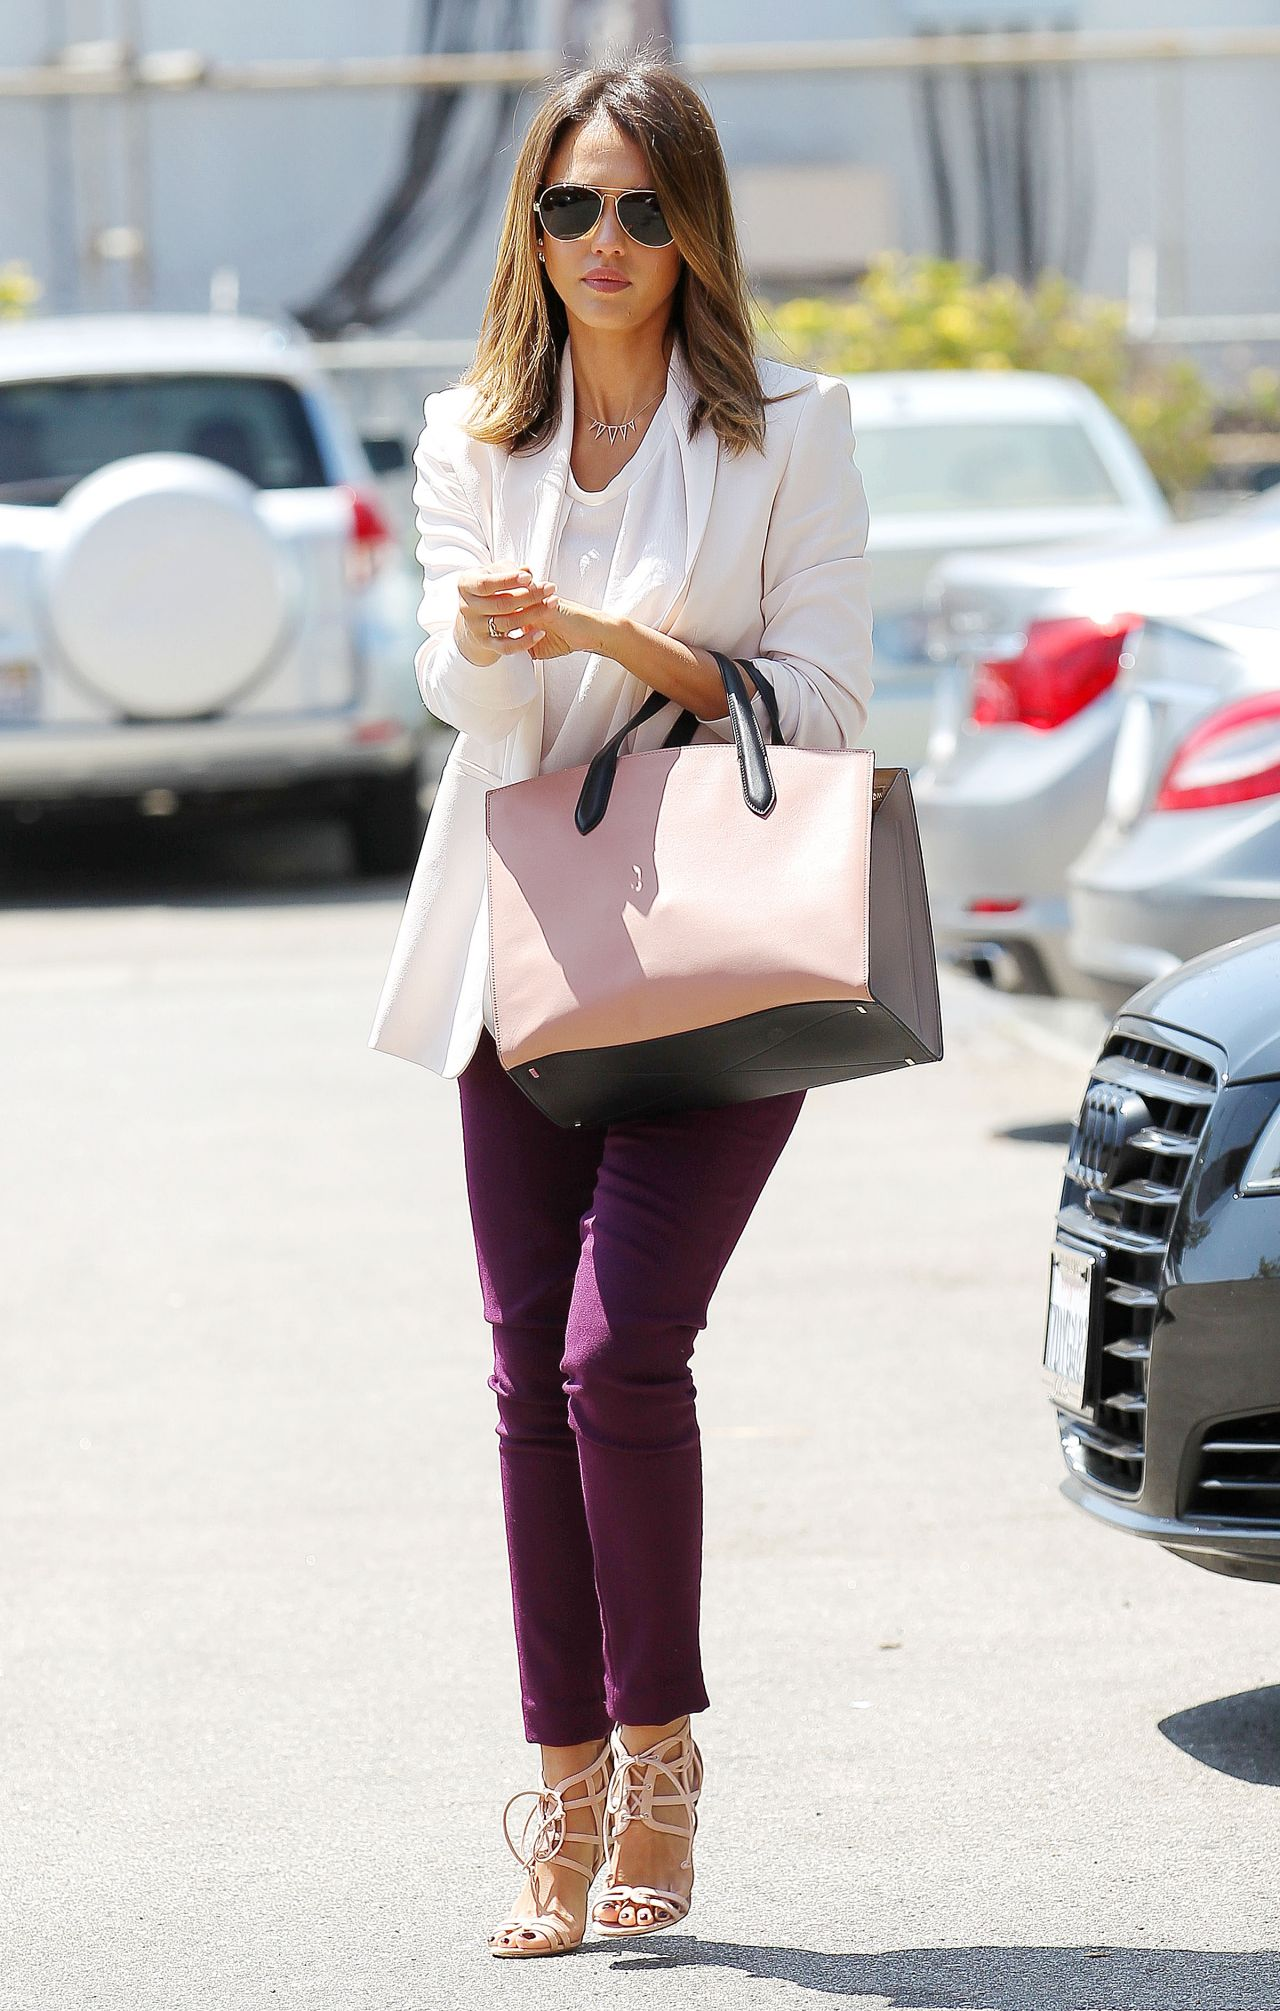 jessica-alba-casual-style-heads-to-the-office